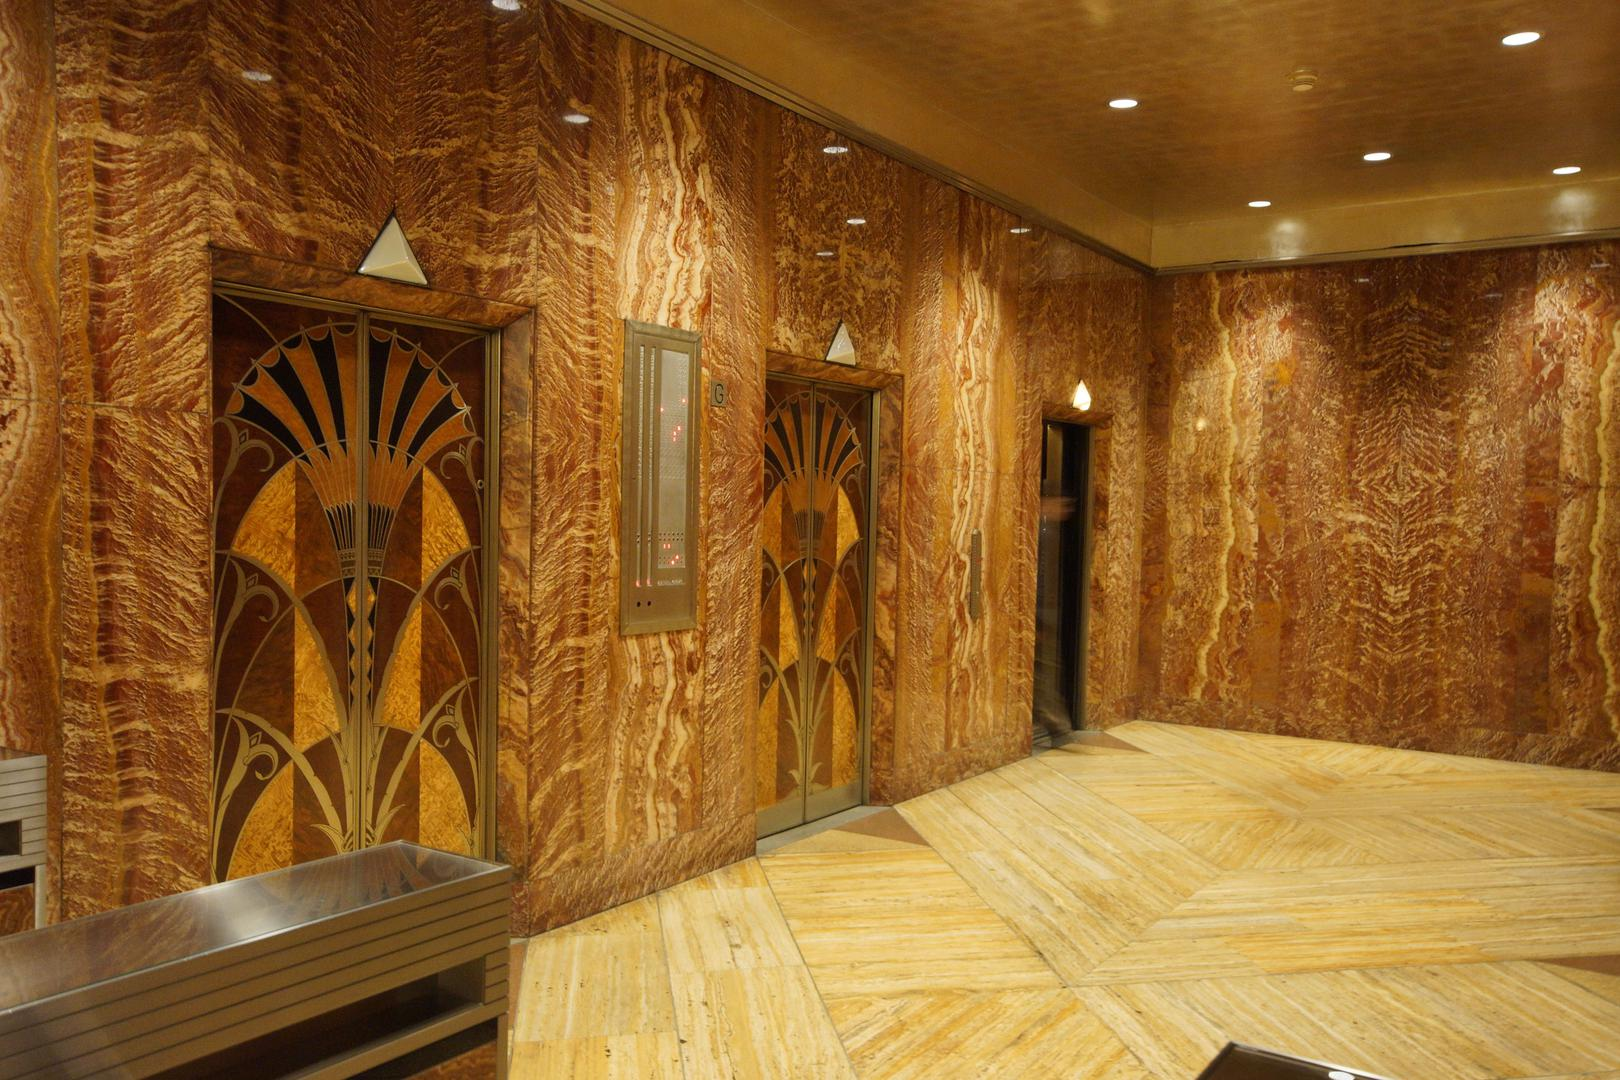 Chrysler Building elevator lobby; image from Wikipedia.